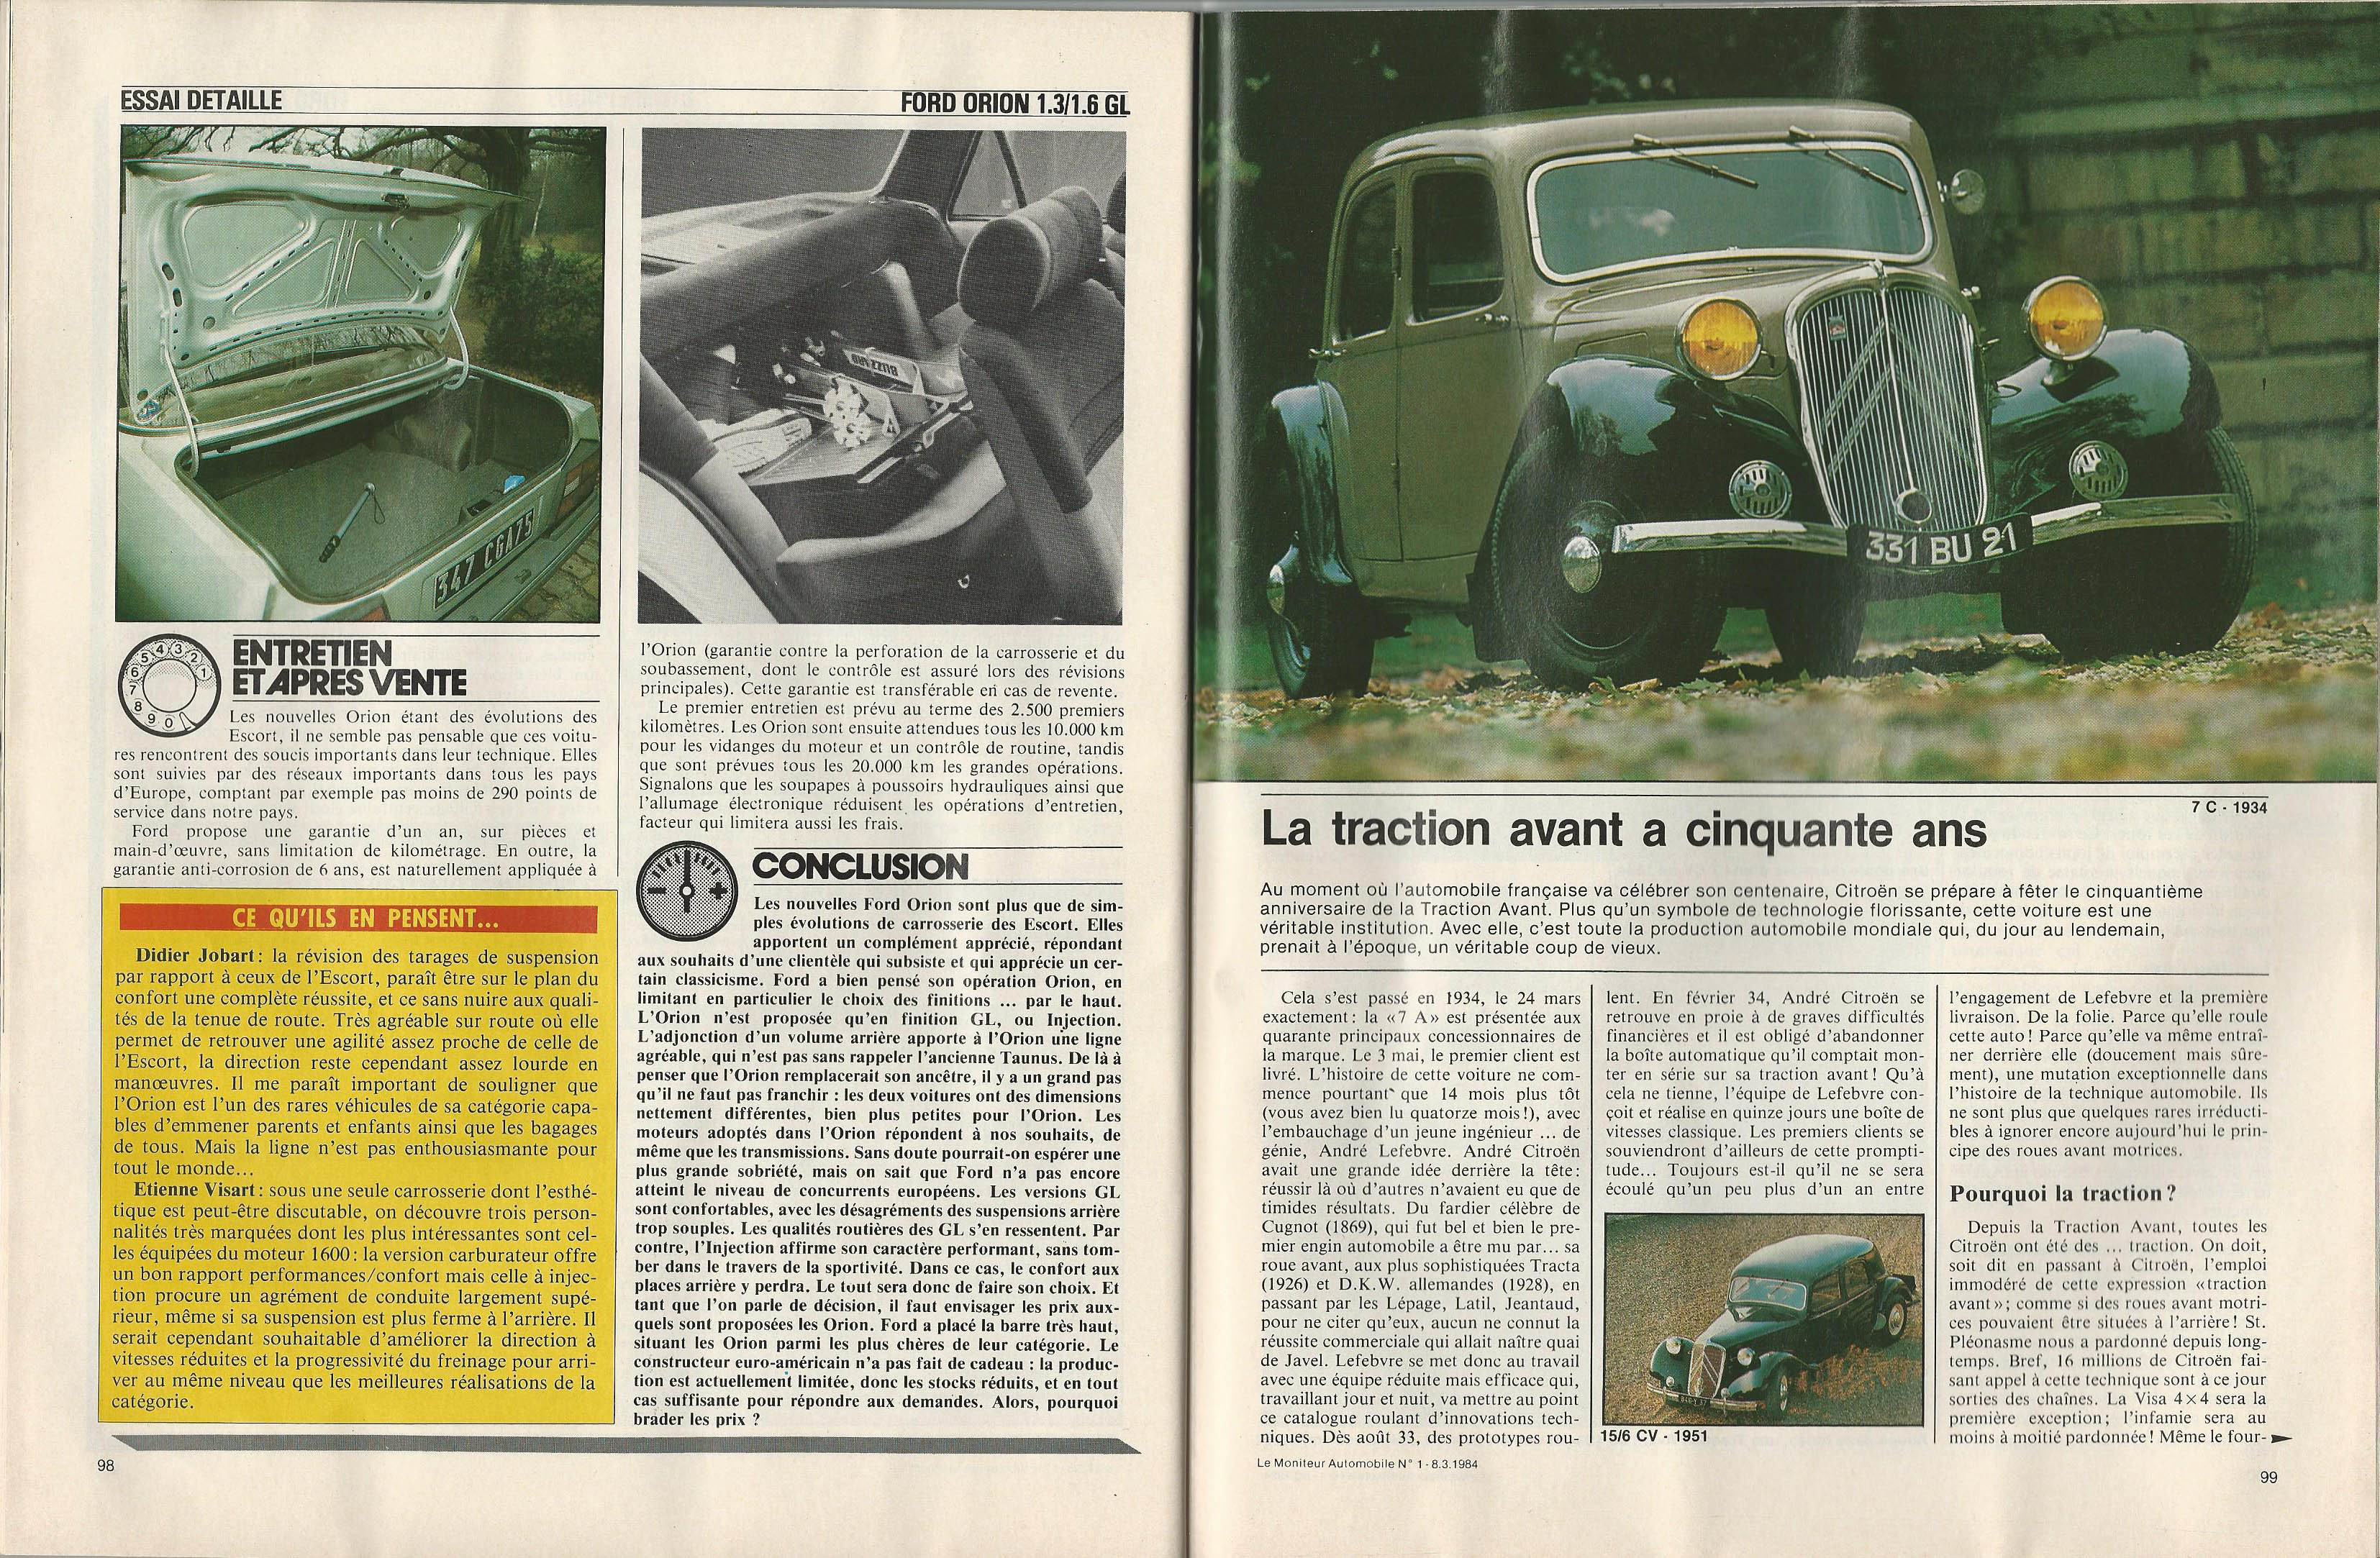 Moniteur Automobile 01 - 08 Mars 1984 (41)